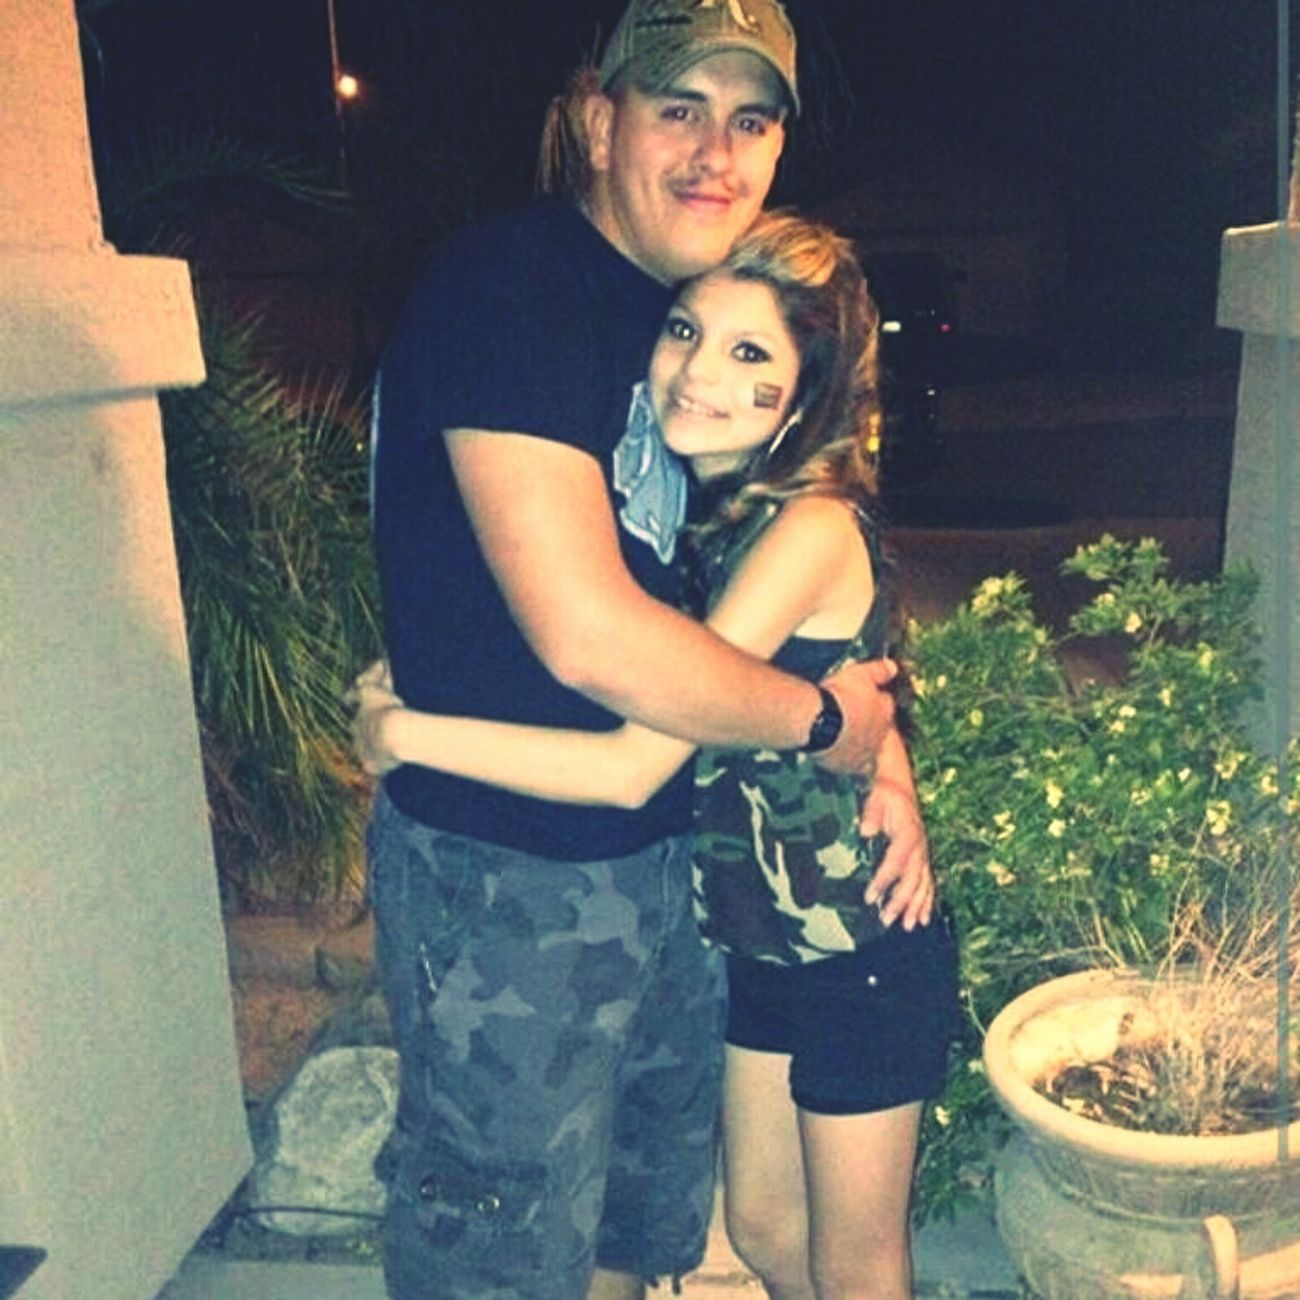 Big brothers welcome home air force party ♥